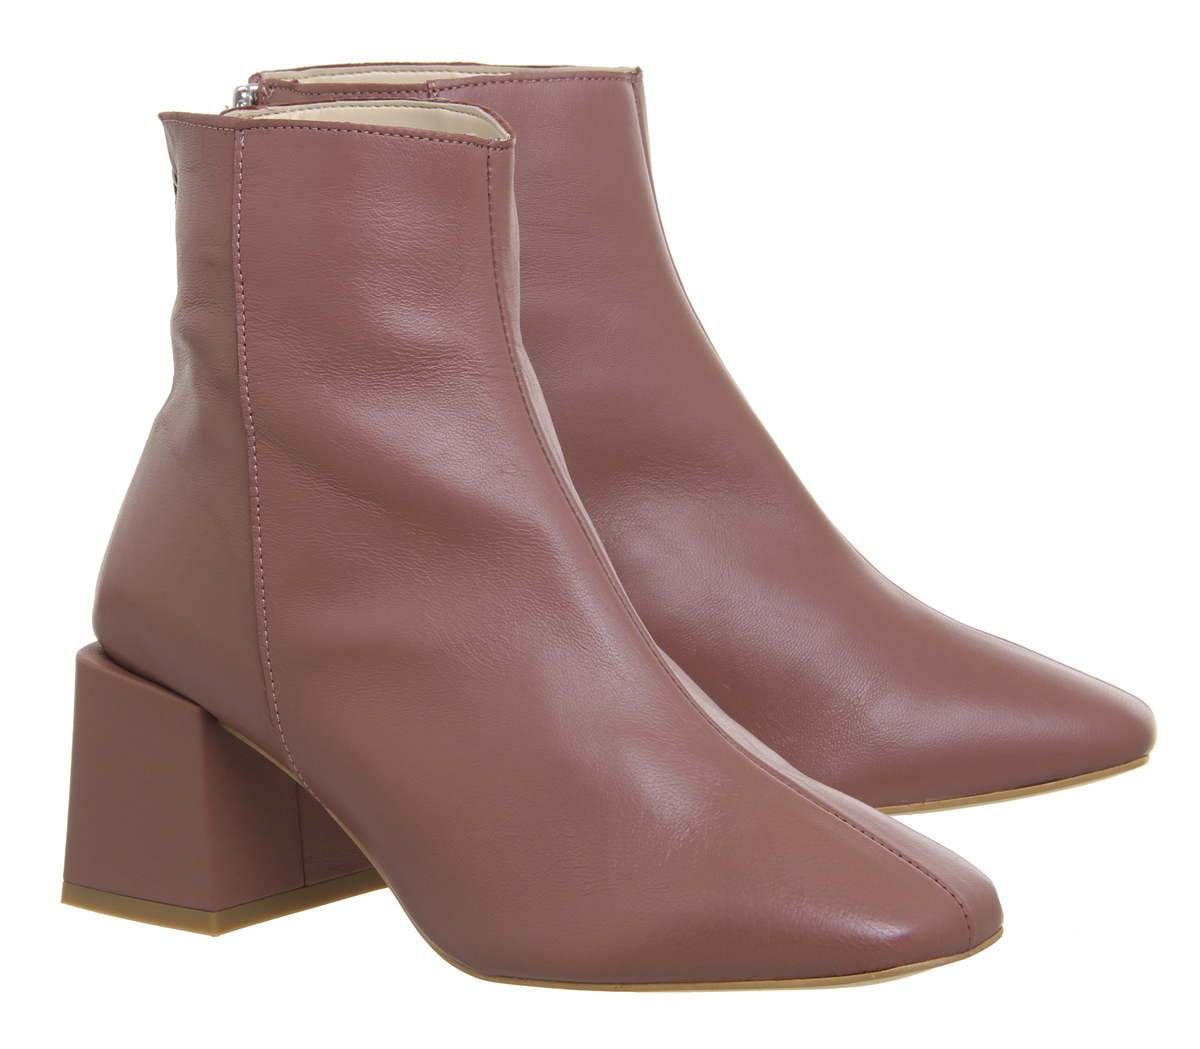 a54547d58f Womens Office Apricot Square Toe Block Heel Boots Pink Leather Boots ...